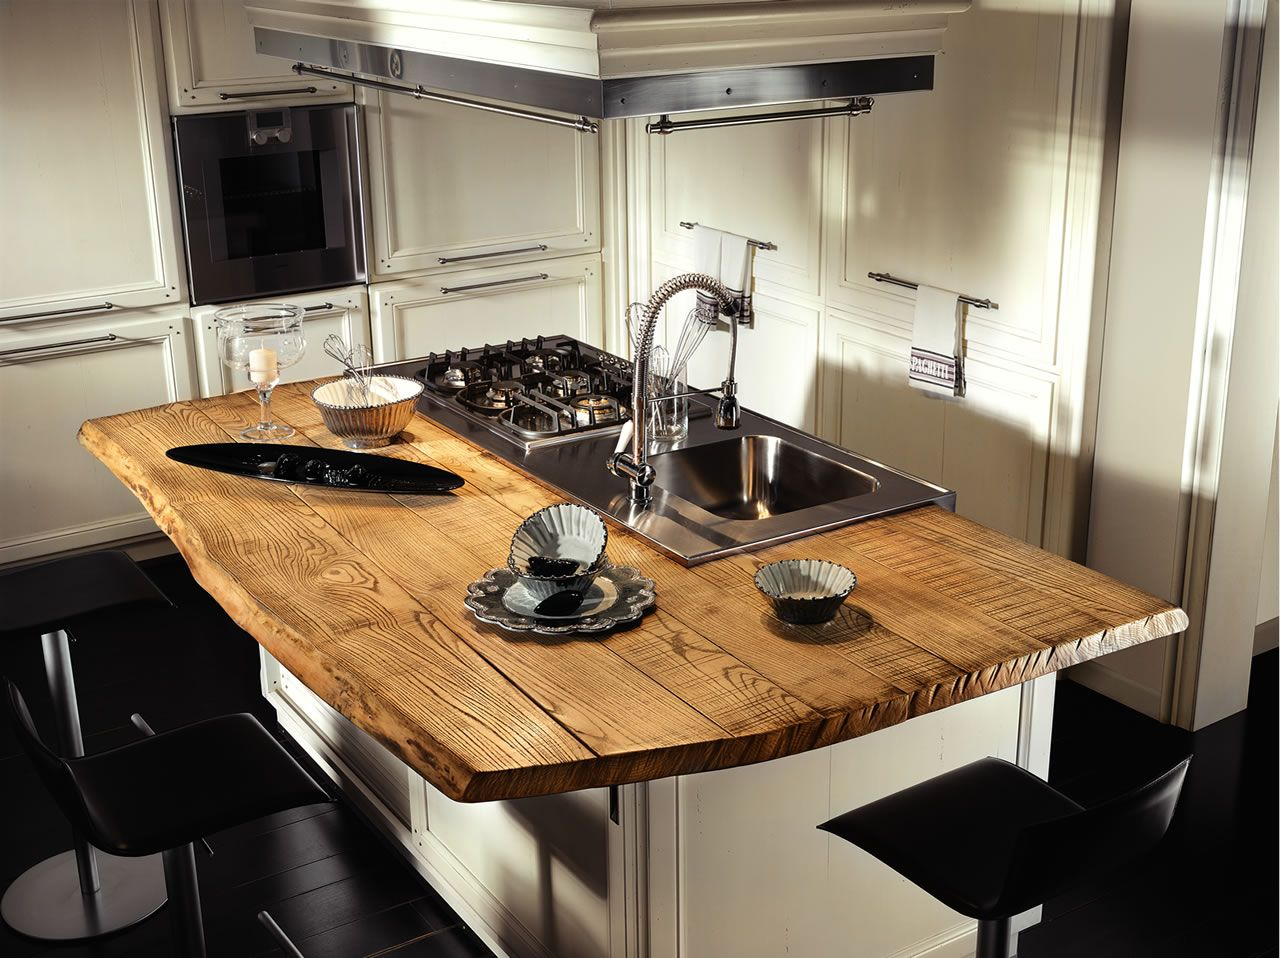 Kitchen Countertop Types, Design Options, and Usage Parameters. Kitchen island with wooden top and large area for butcher block